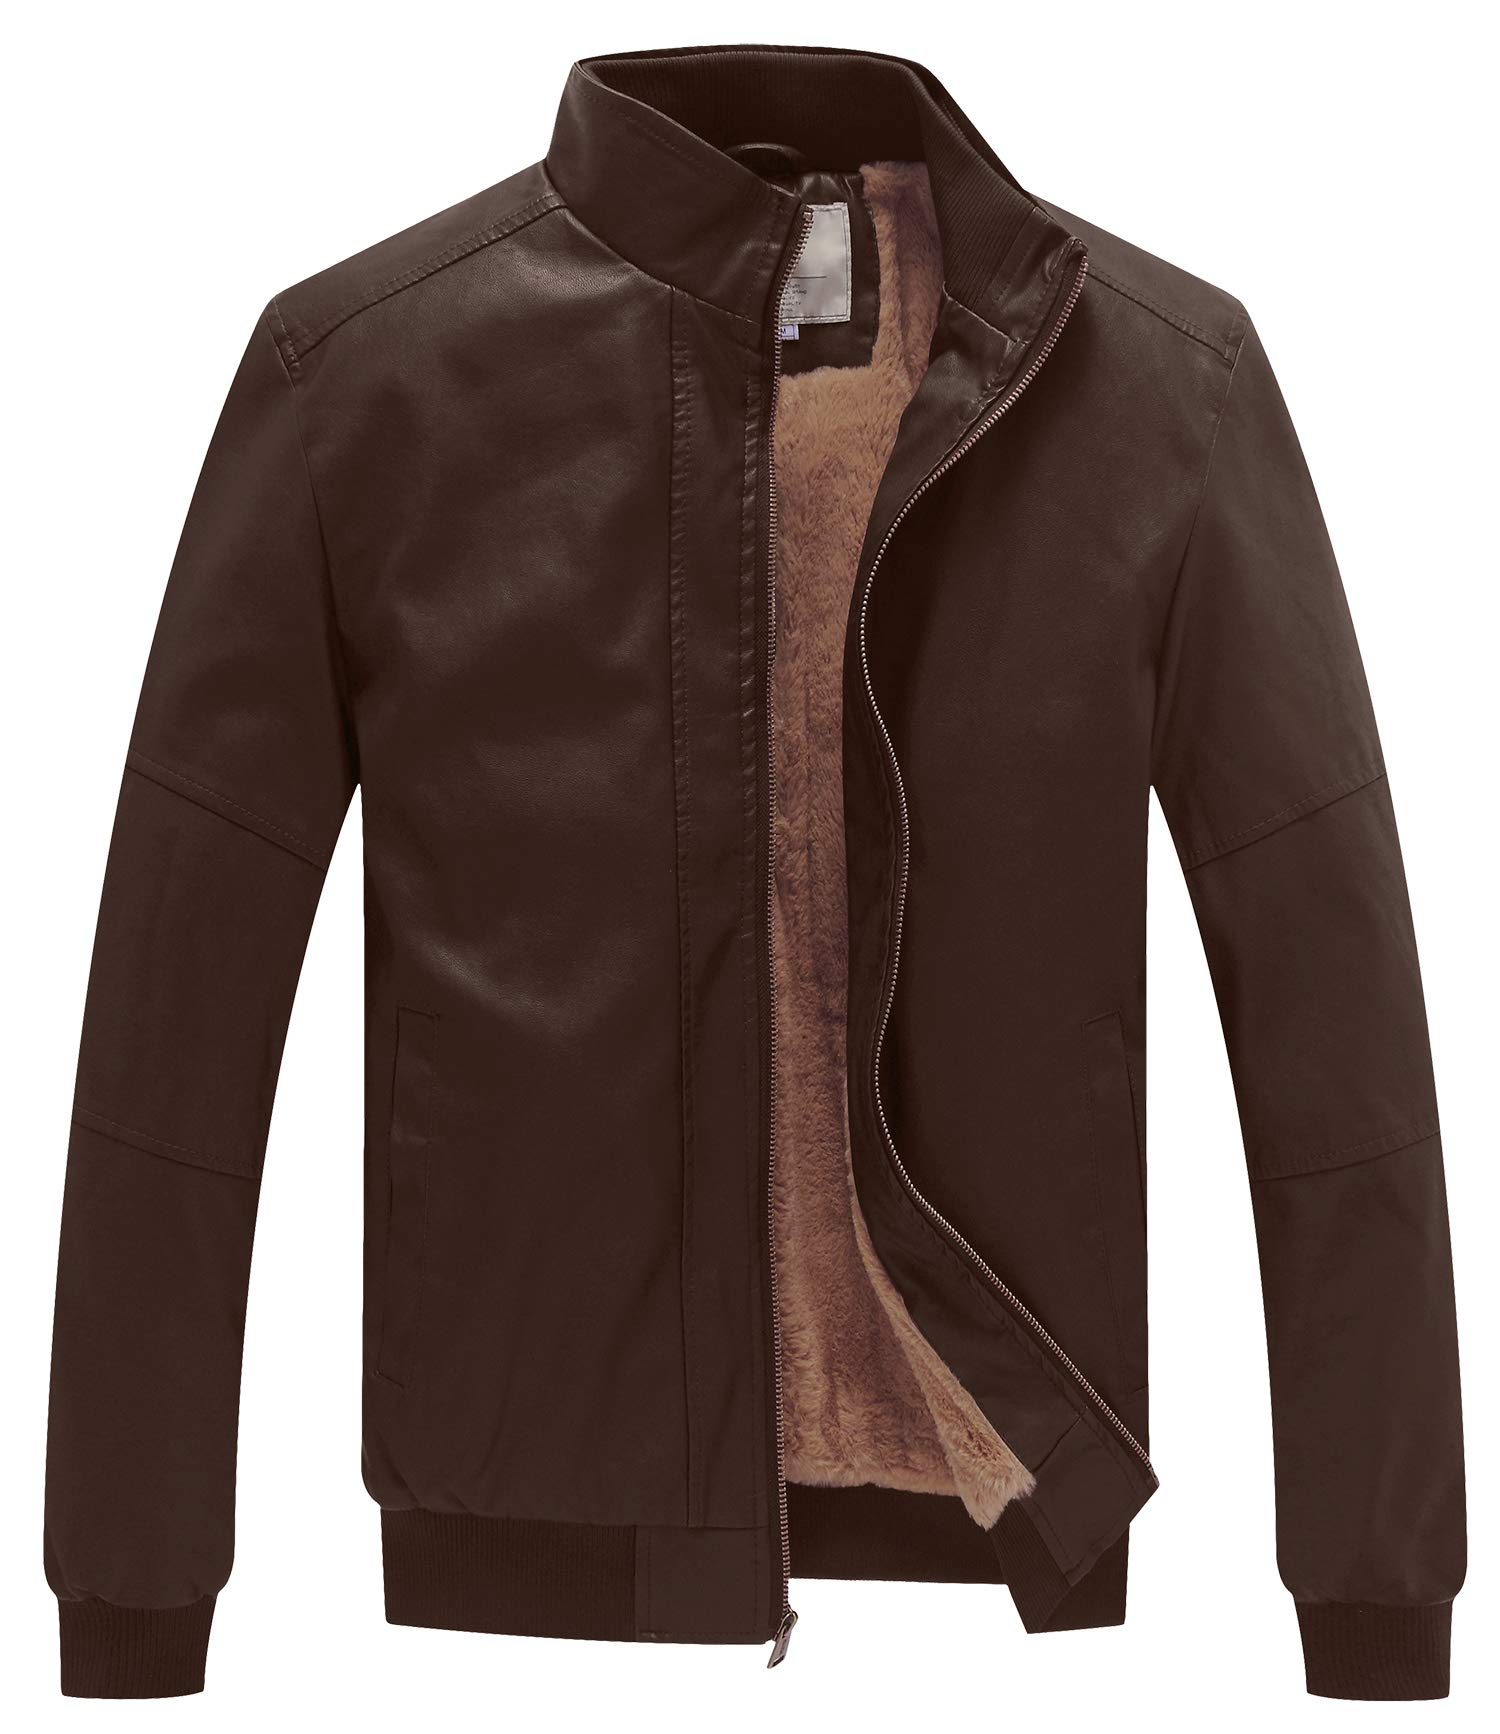 WenVen Men's Classic Star Lord Style Coat Faux Leather Motorcycle Jacket Brown Medium by WenVen